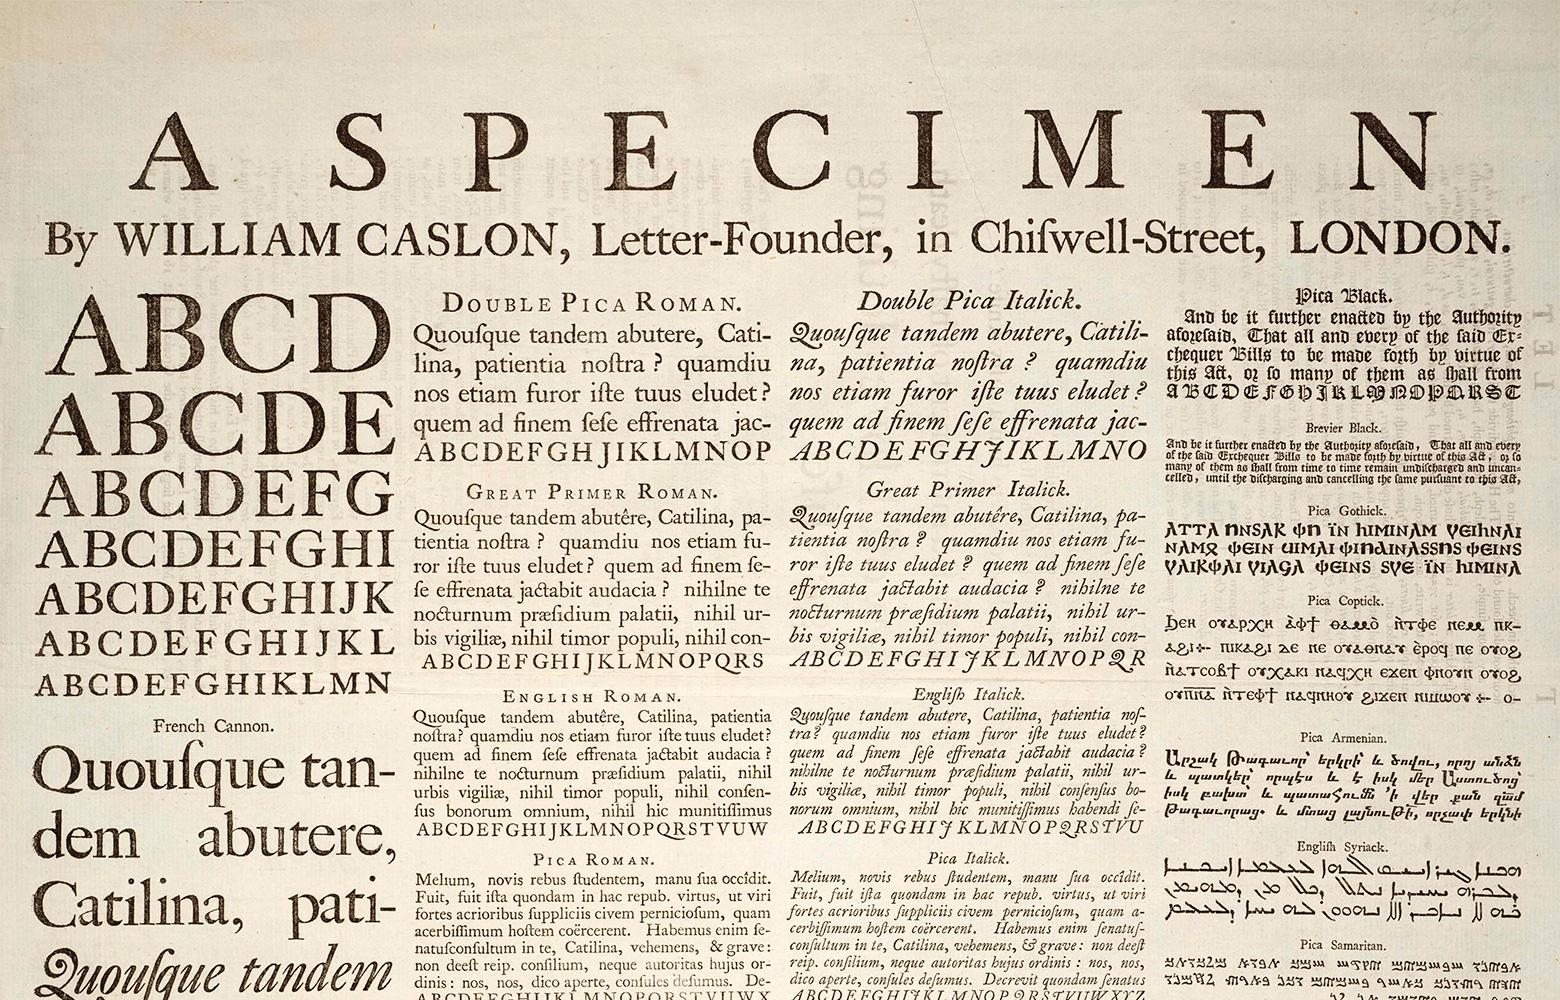 Specimen documents showed differences in typeface anatomy